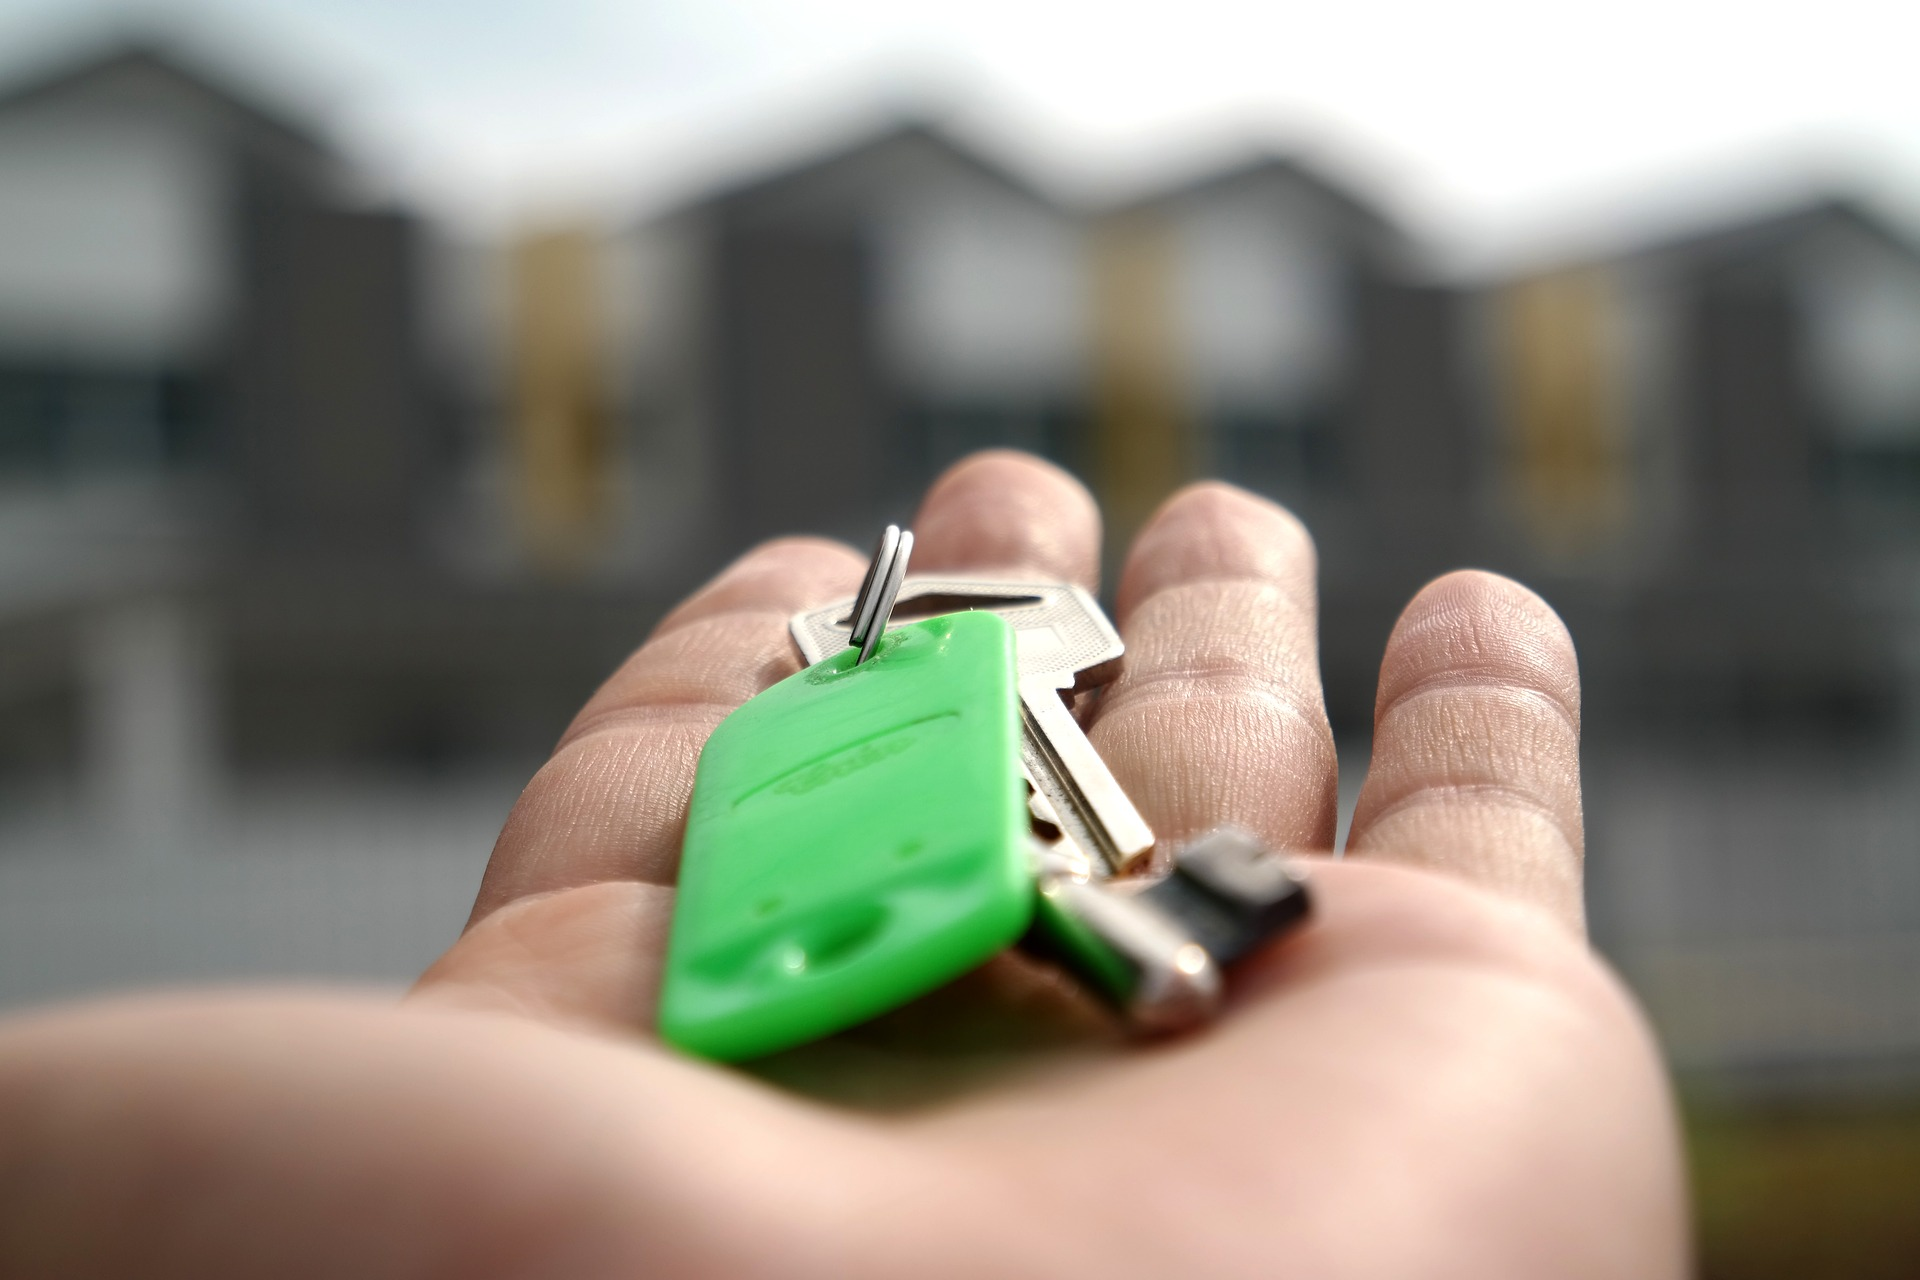 Holding a key - contact Morris Plains movers and get ready to move into your new home